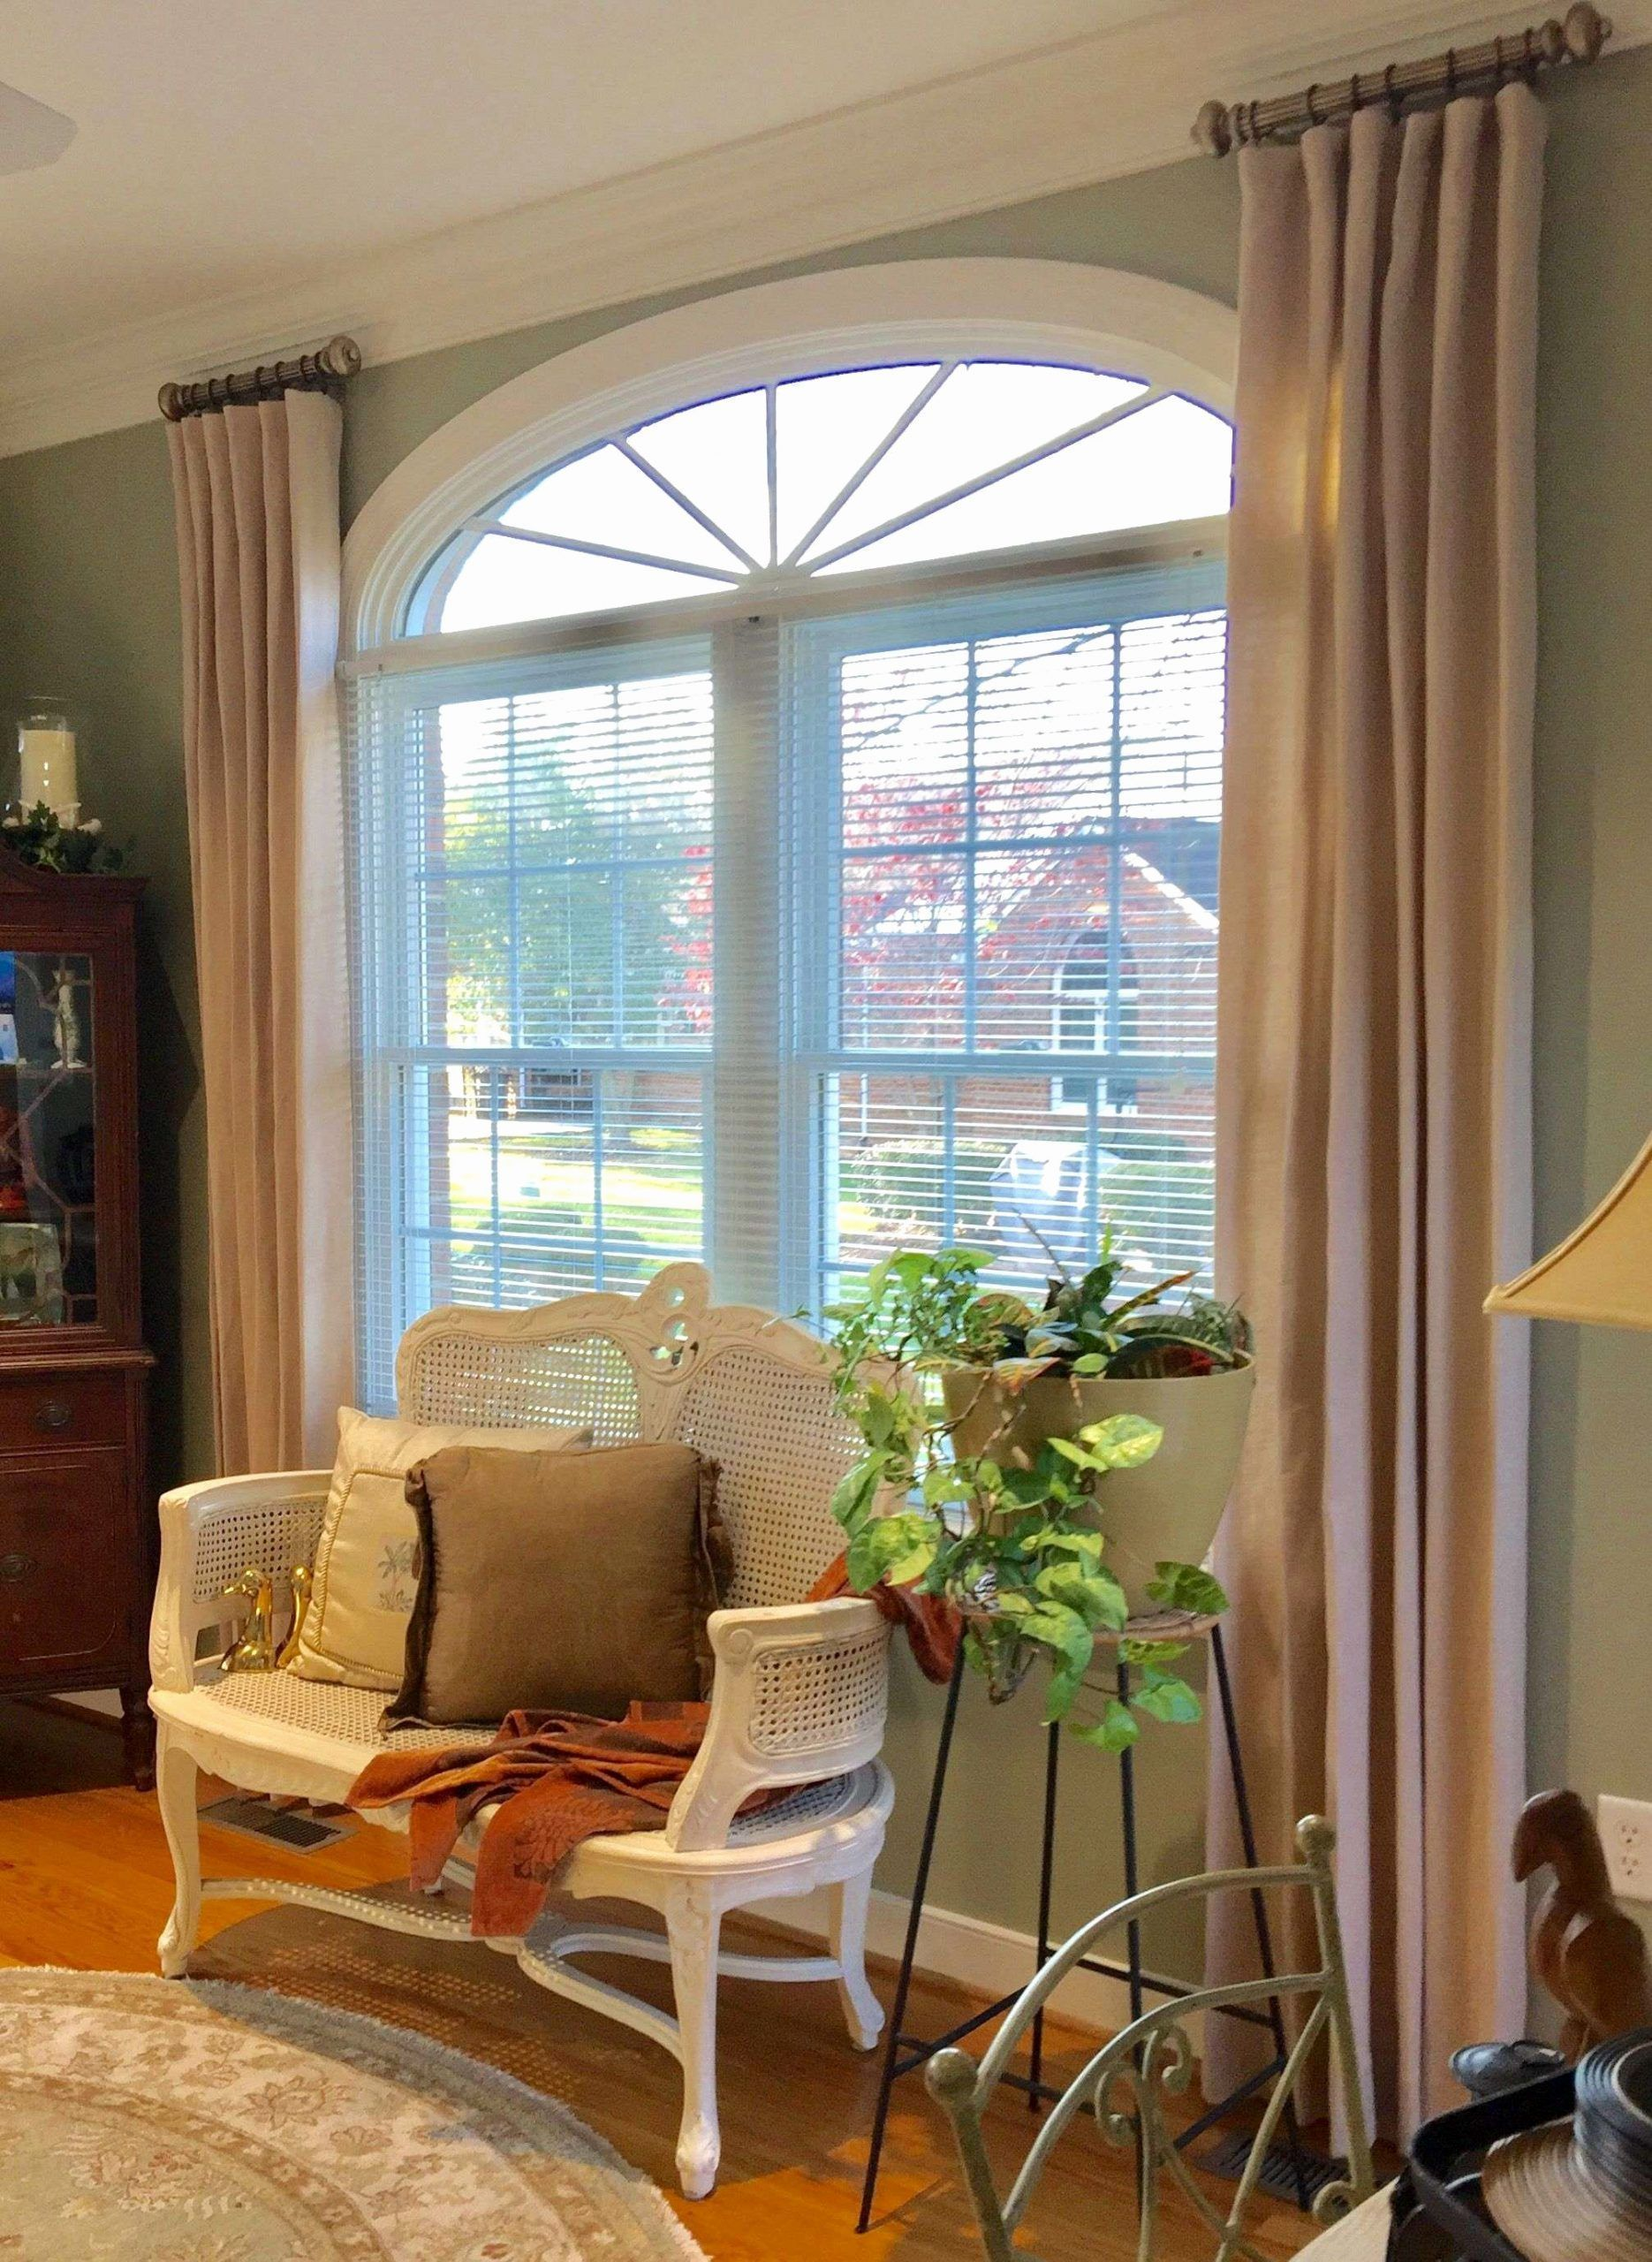 Curtains For Dining Room Windows Luxury Decorating Arch Window Treatments Di Dining Room Window Treatments Curtains For Arched Windows Arched Window Treatments